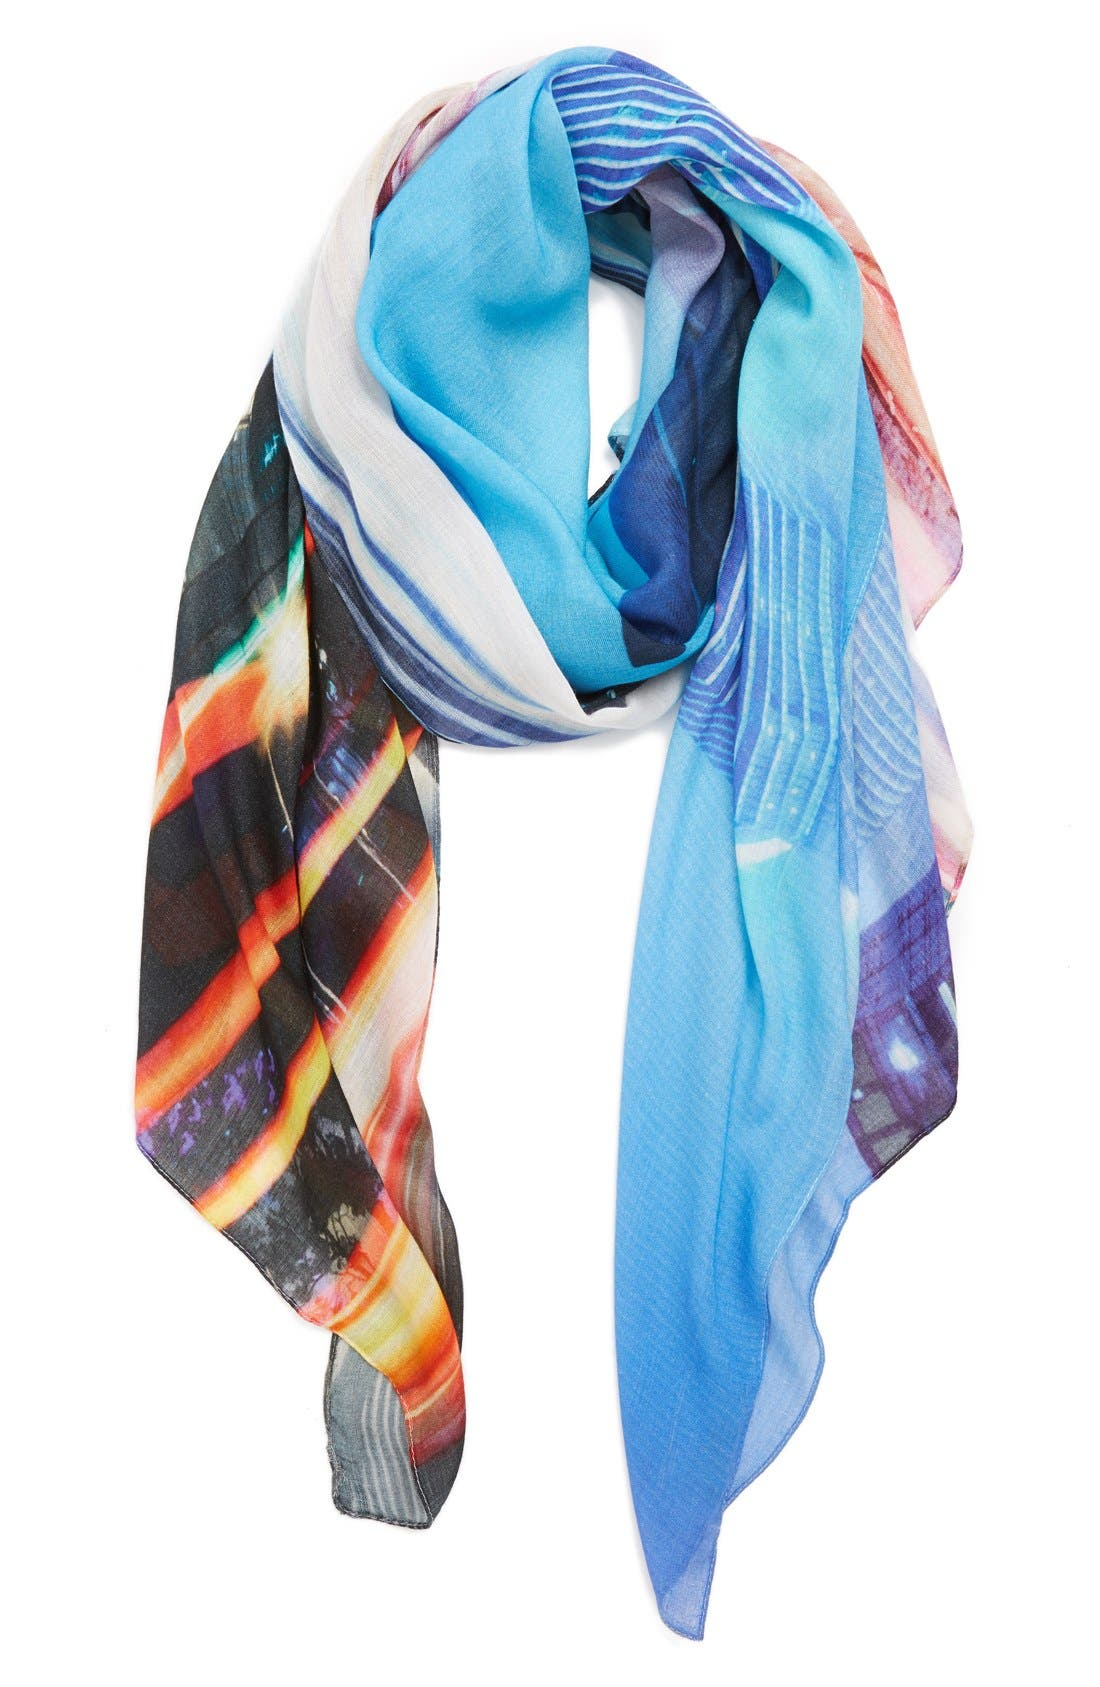 'Fly By' Digital Print Scarf,                             Main thumbnail 1, color,                             400